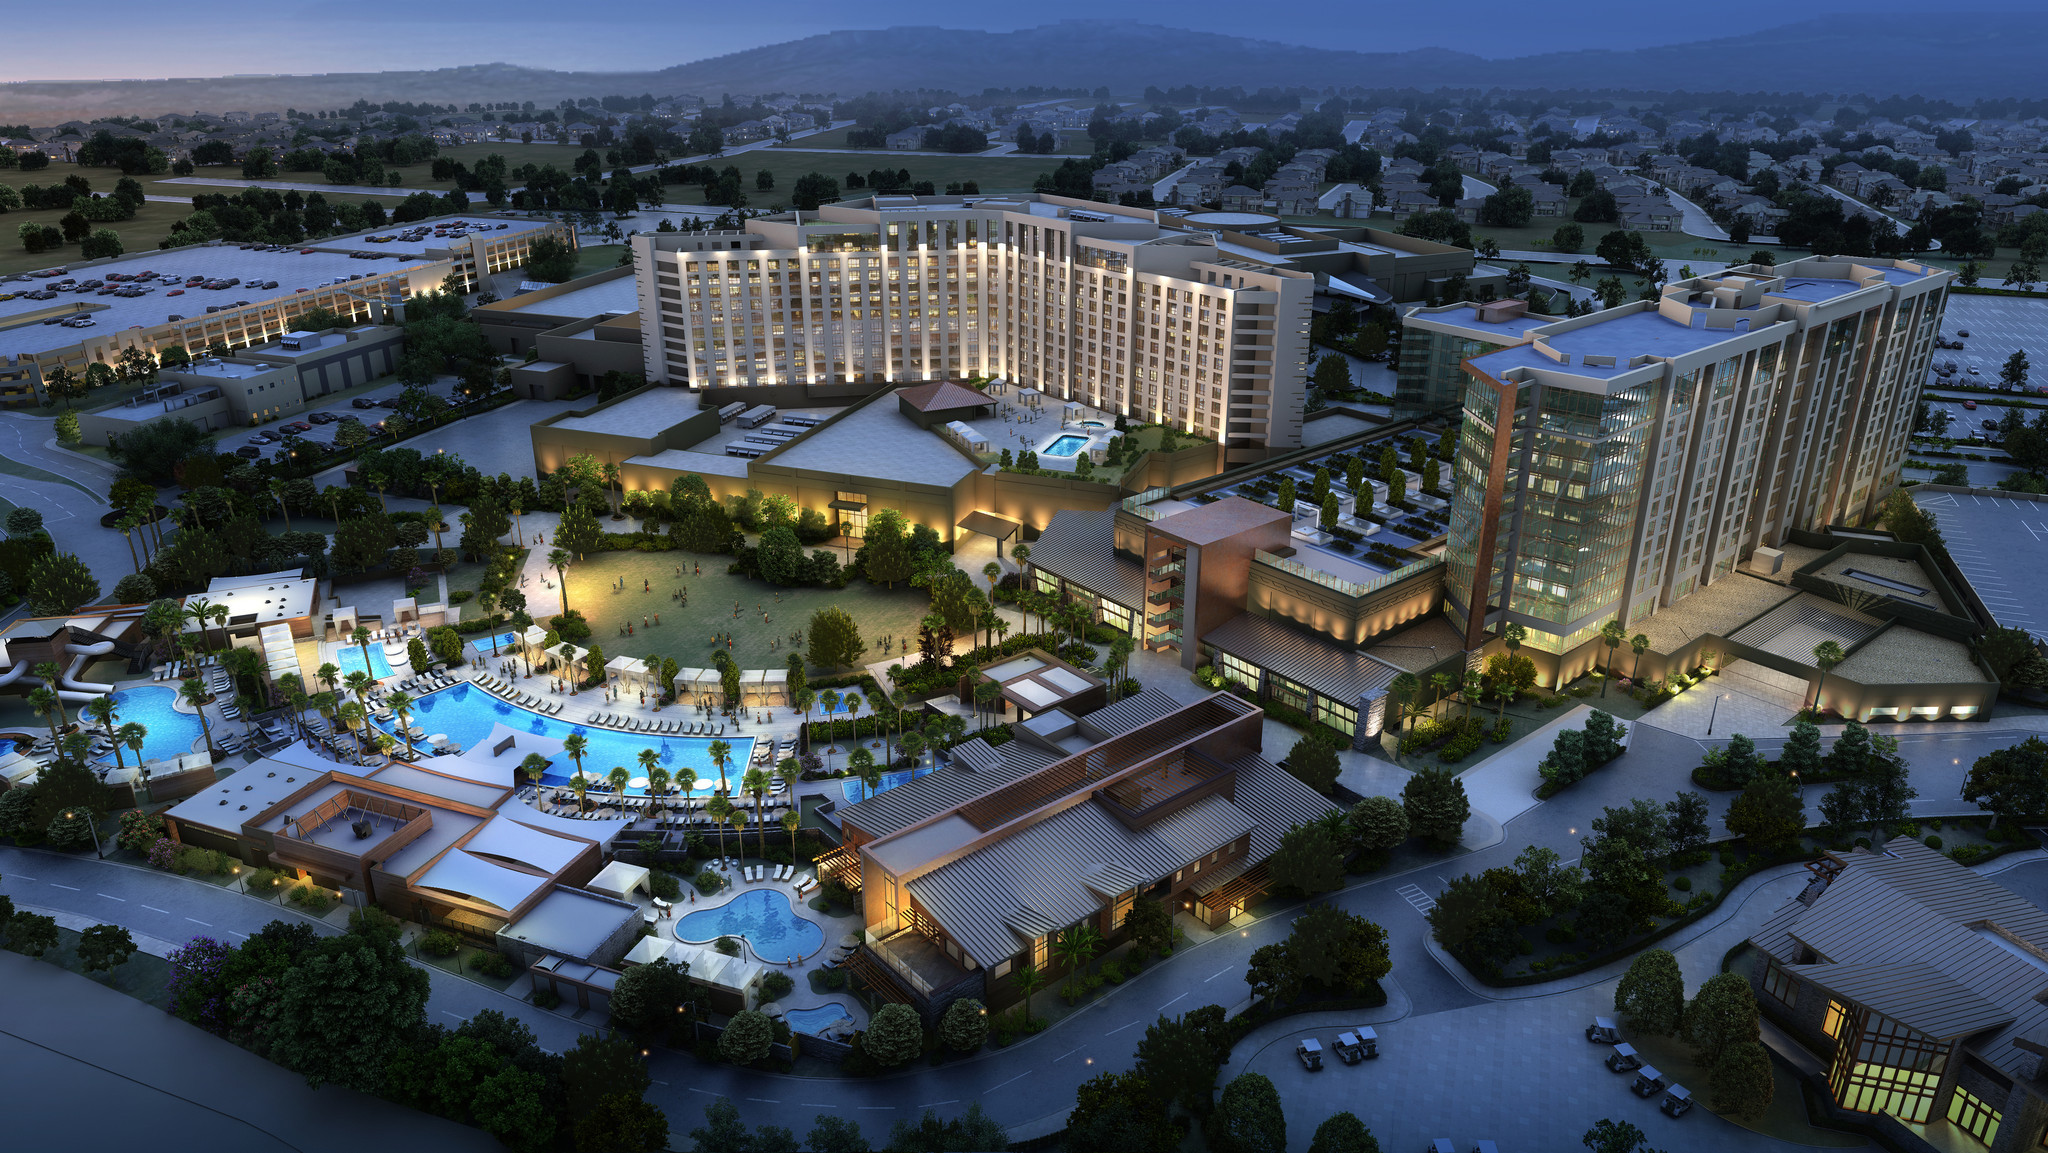 Pechanga resort casino temecula